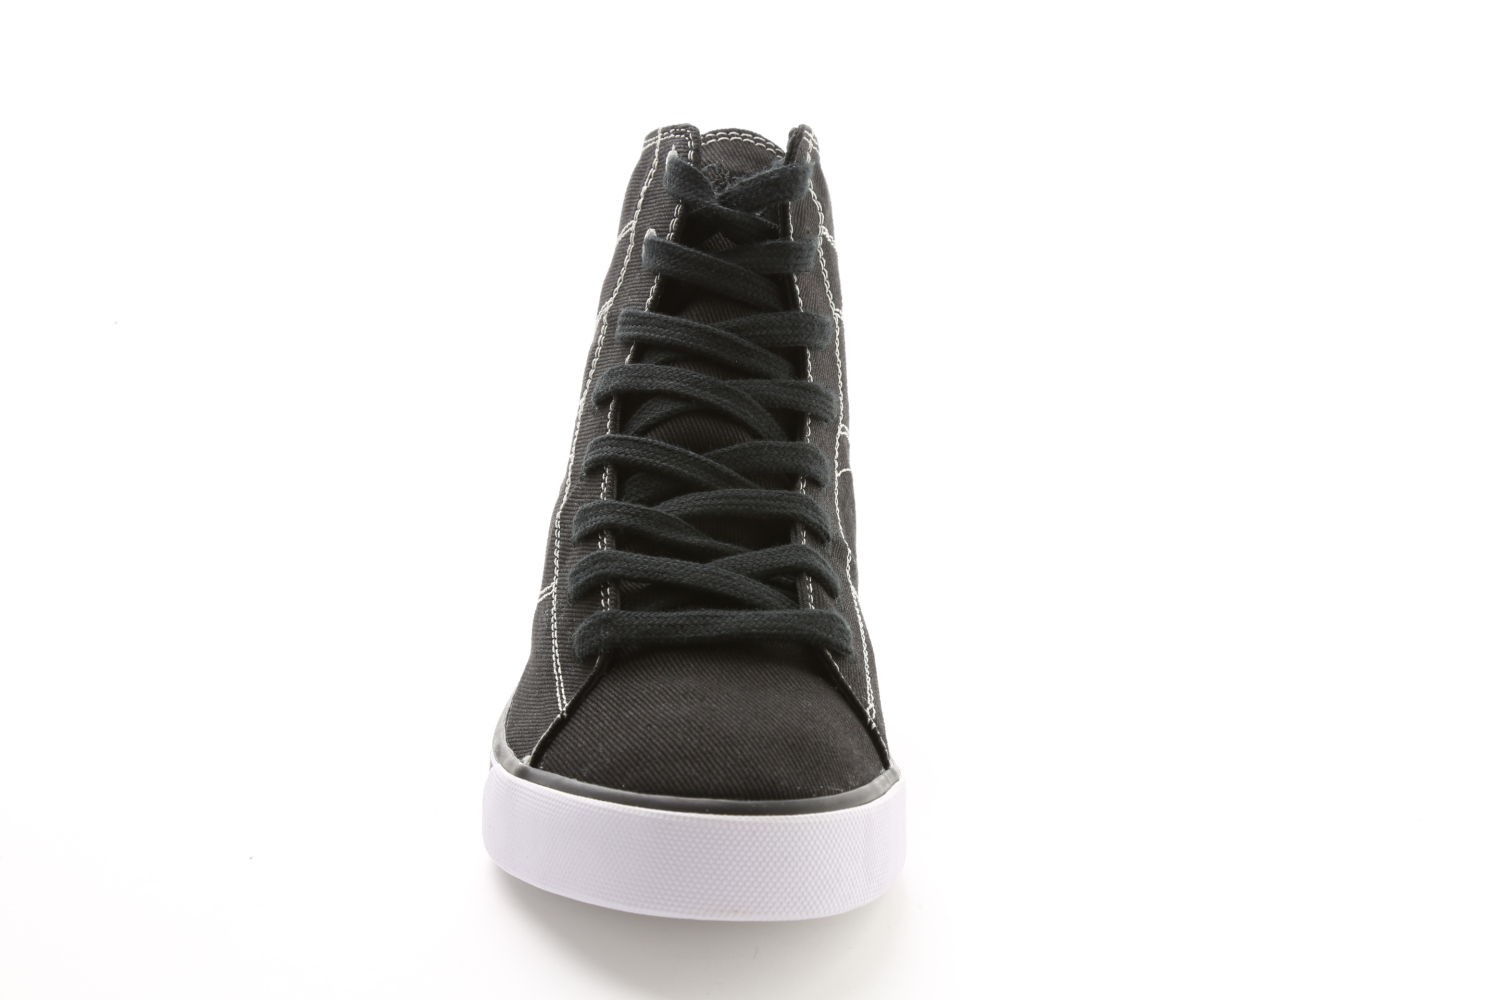 Pastry Adult Canvas High Top Dance Sneaker Black